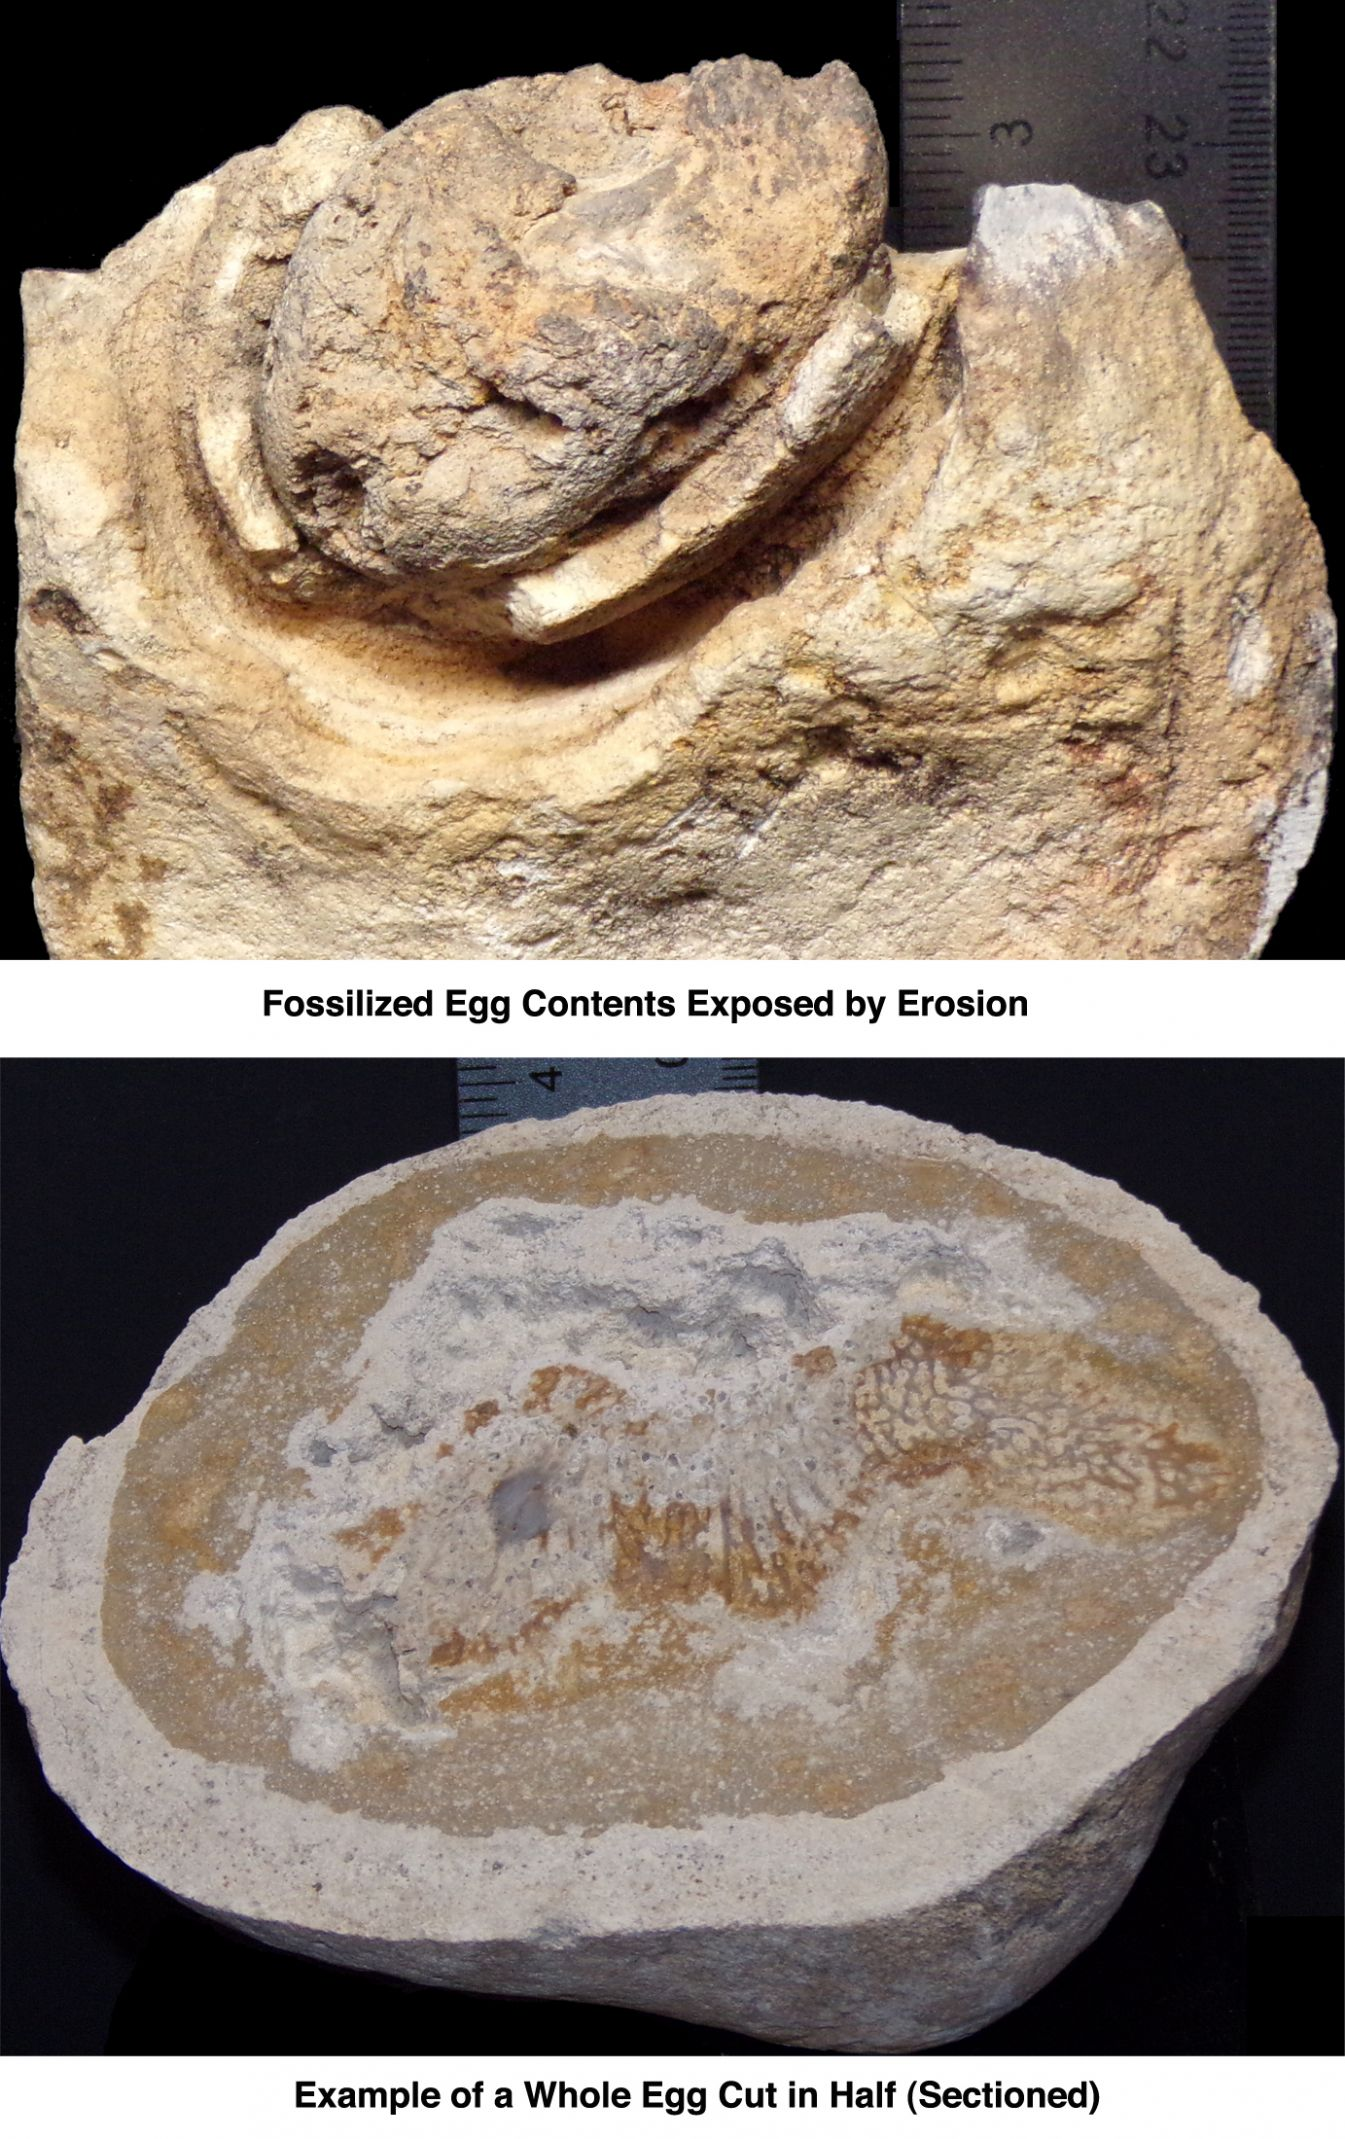 Fossilized Eggs